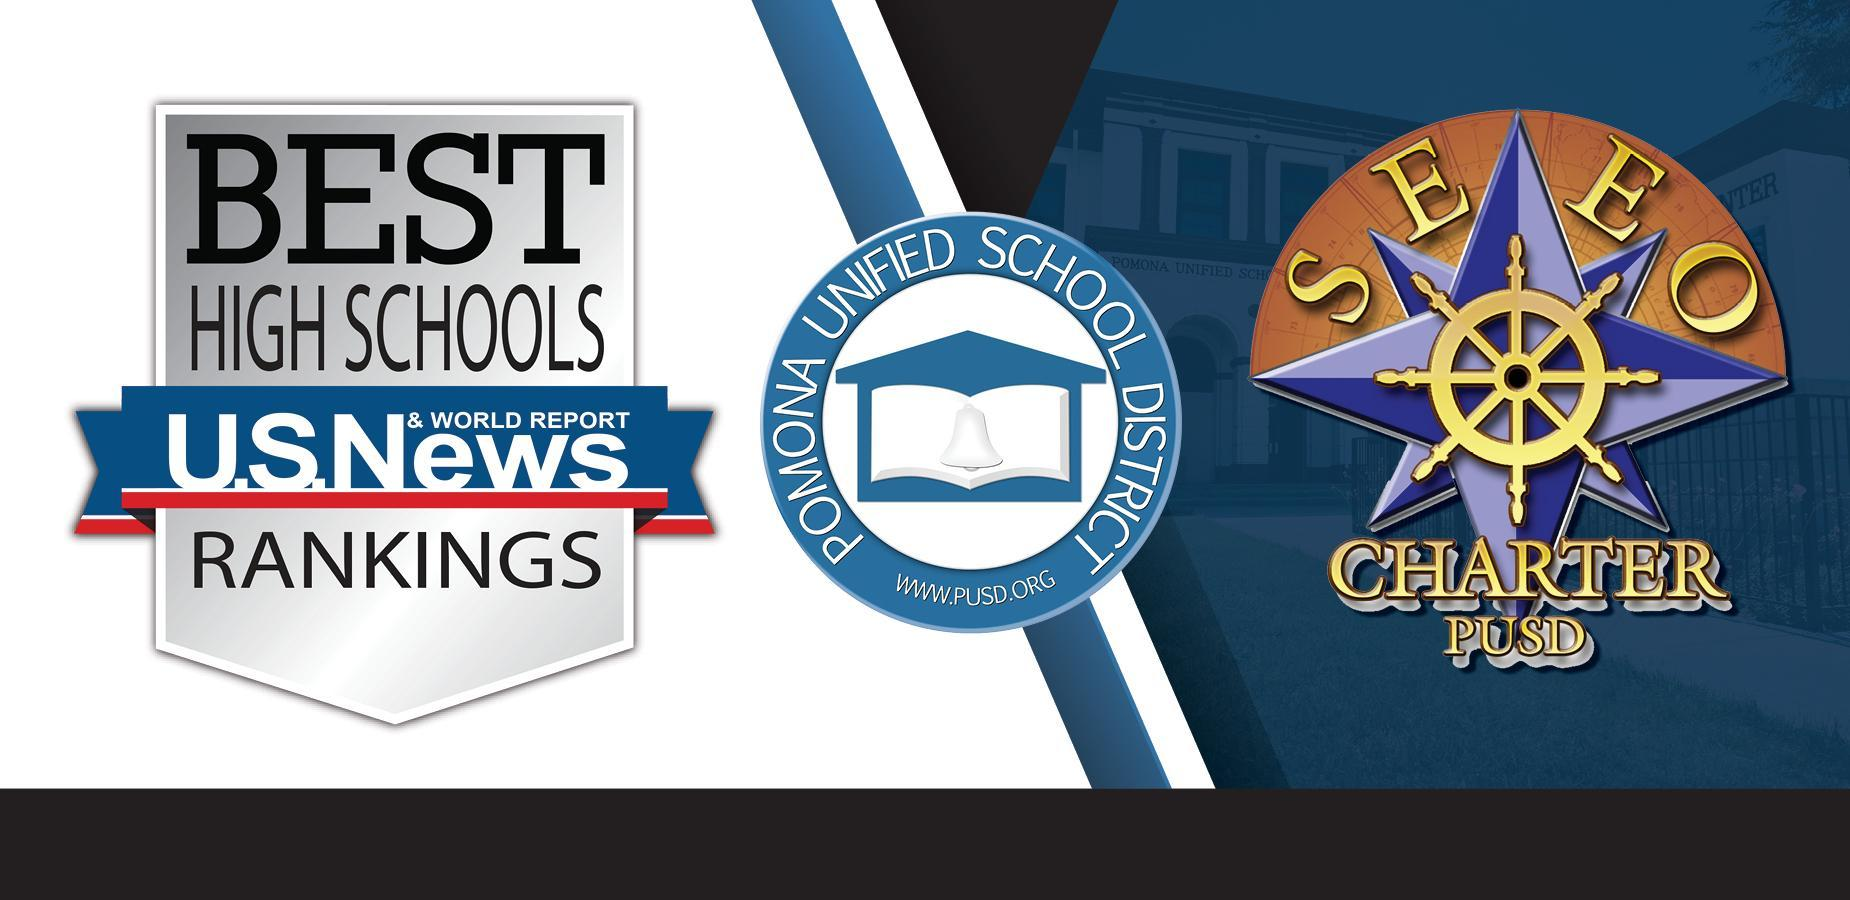 U.S. News & World Report - Best High Schools Award